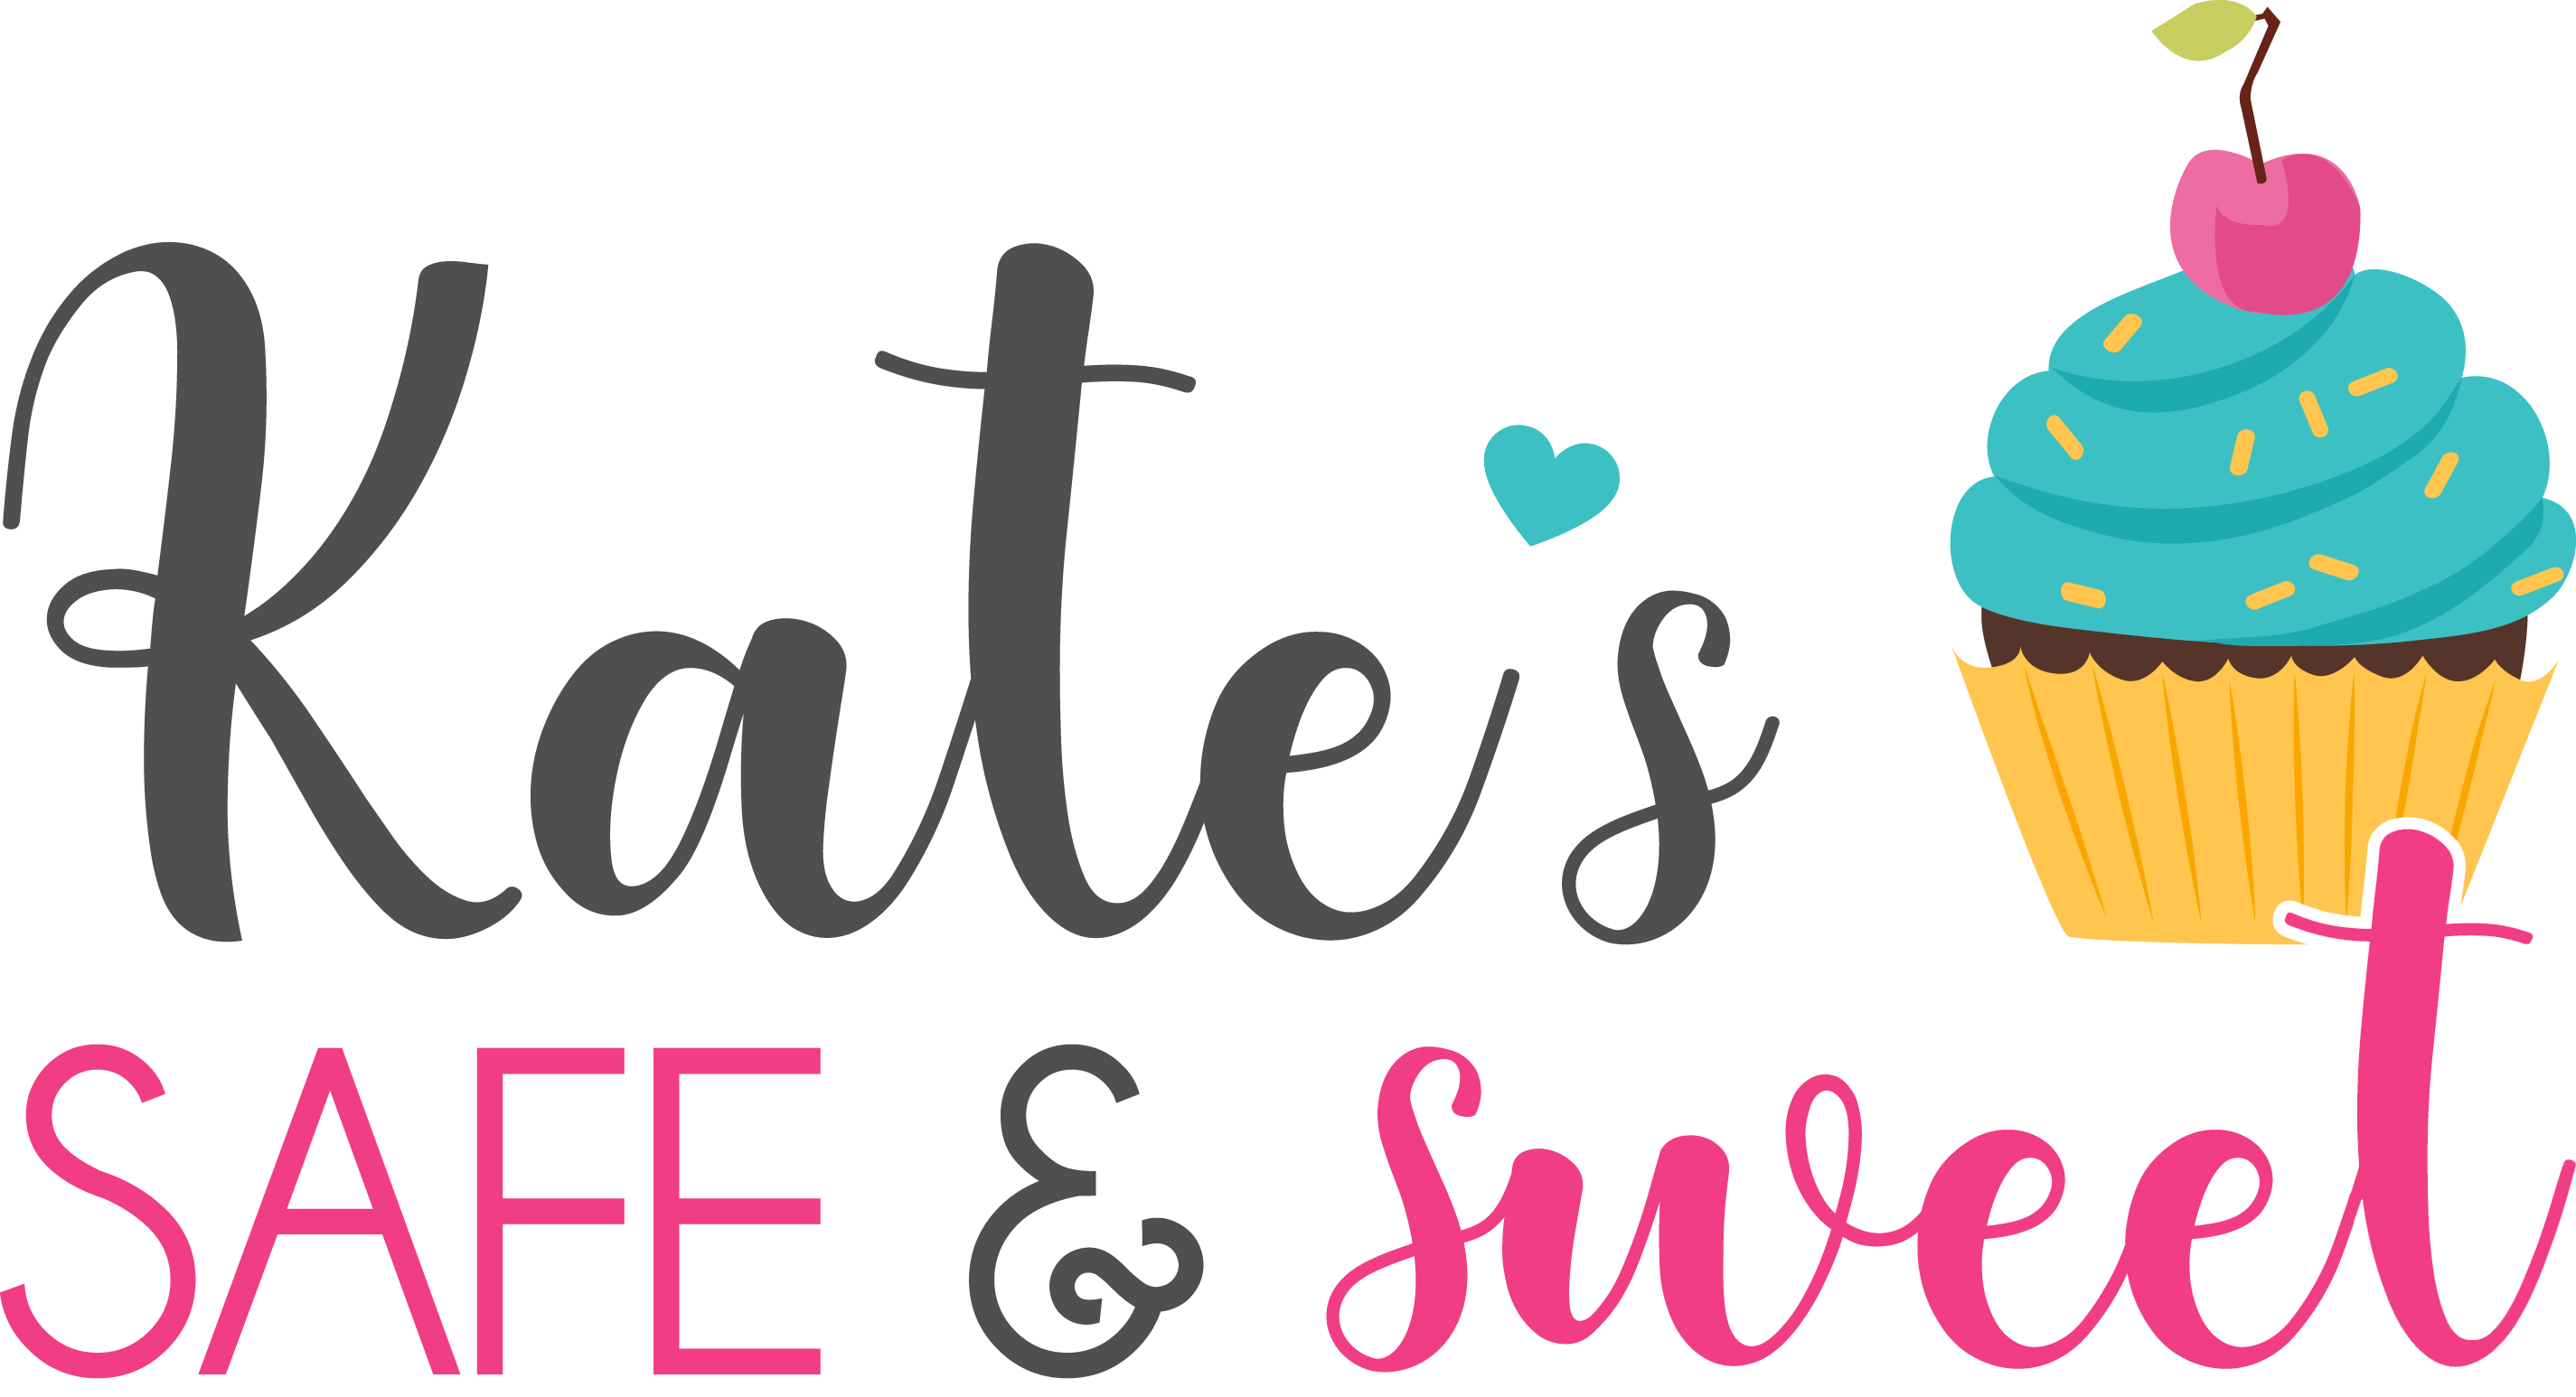 Kate's Safe and Sweet logo